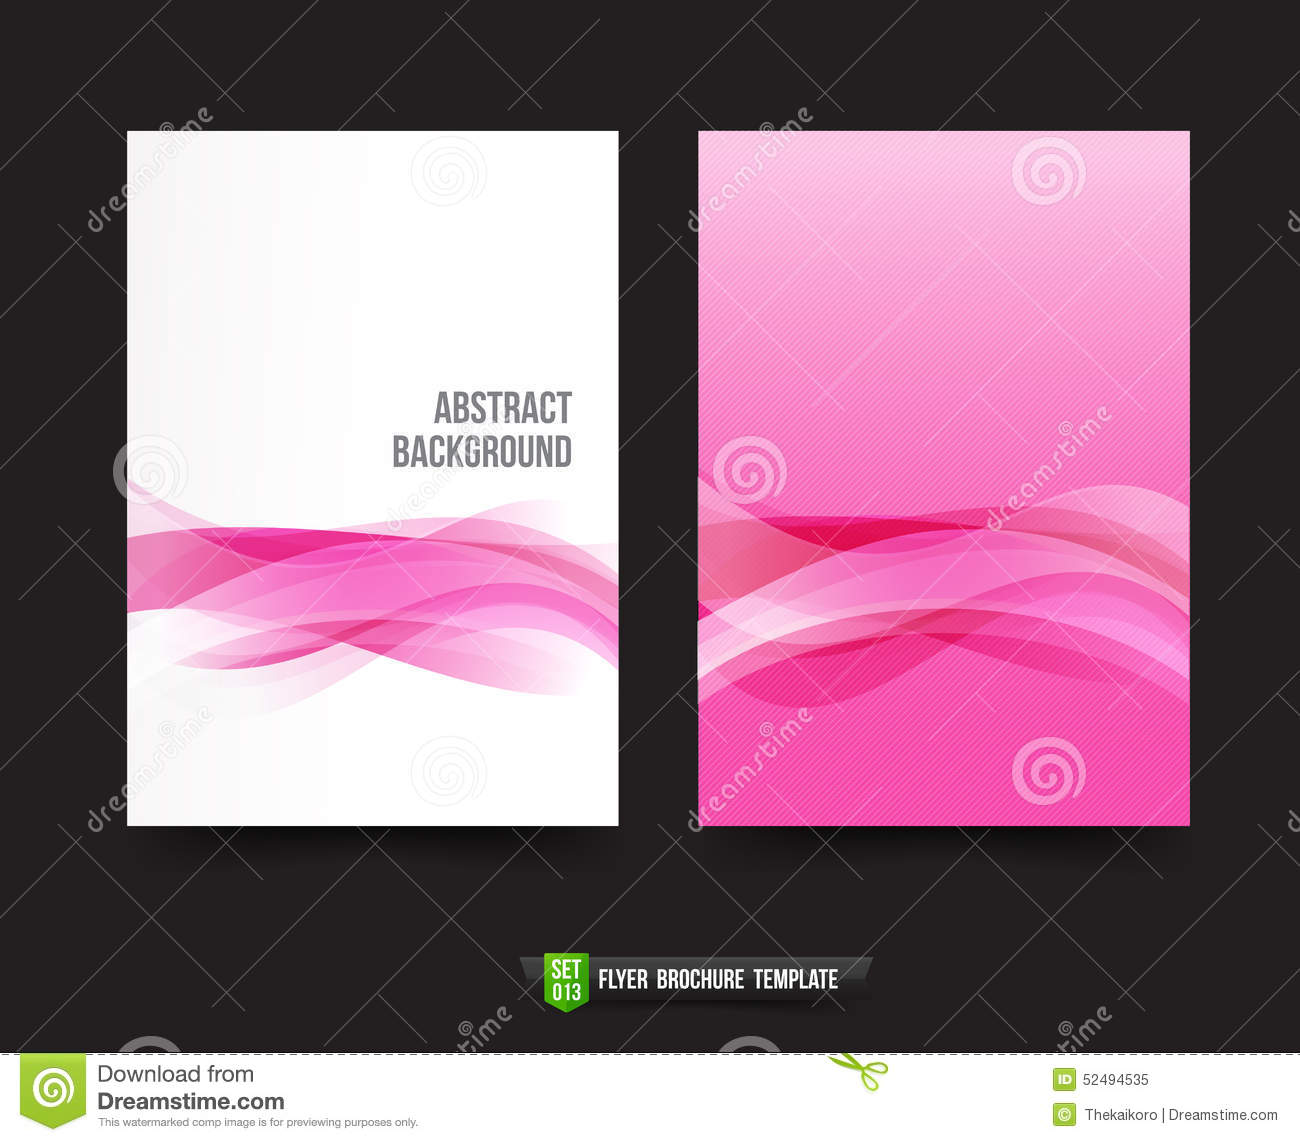 Flyer brochure background template 013 light pink curve for Background brochure templates